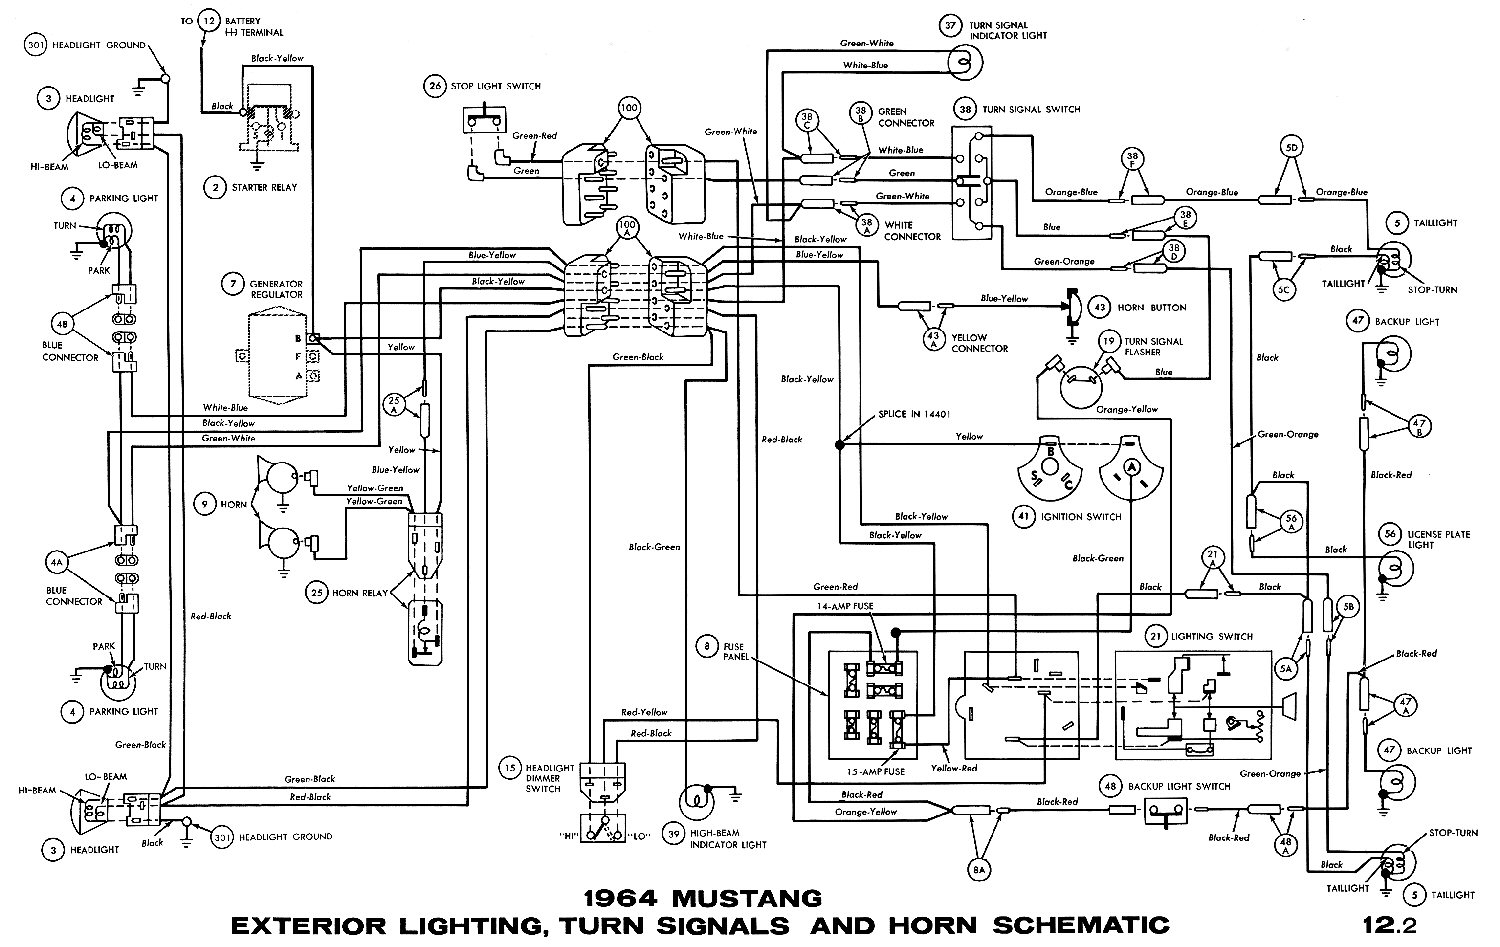 [SCHEMATICS_48IS]  YL_0610] 67 Mustang Ammeter Wiring Diagram Download Diagram | 1966 Mustang Wiring Diagrams |  | Bios Pila Greas Feren Inki Gue45 Mohammedshrine Librar Wiring 101